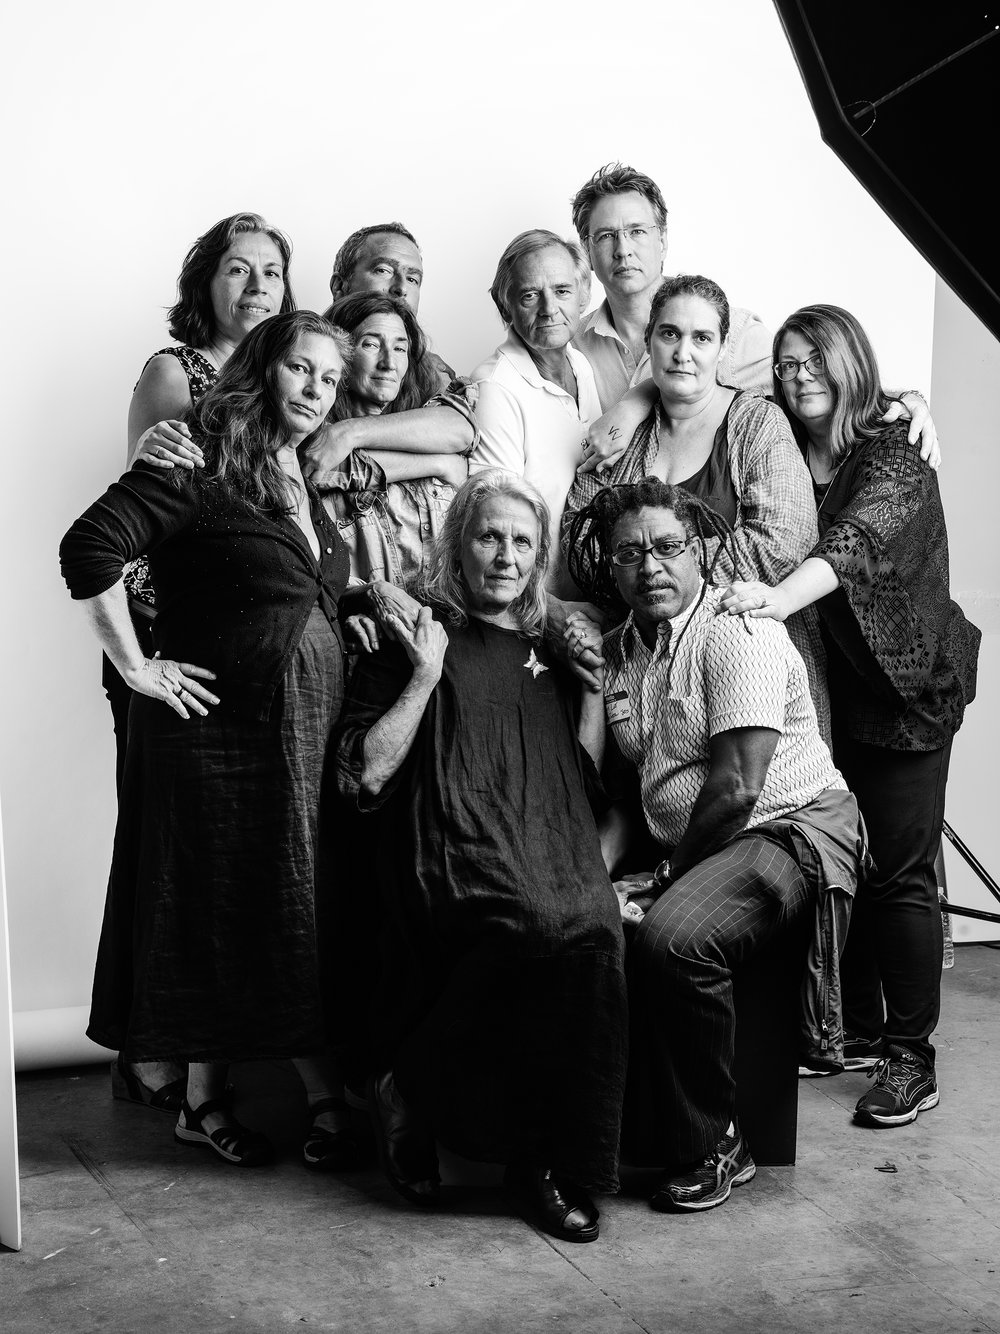 THE PHOTOGRAPHERS OF THE VILLAGE VOICE